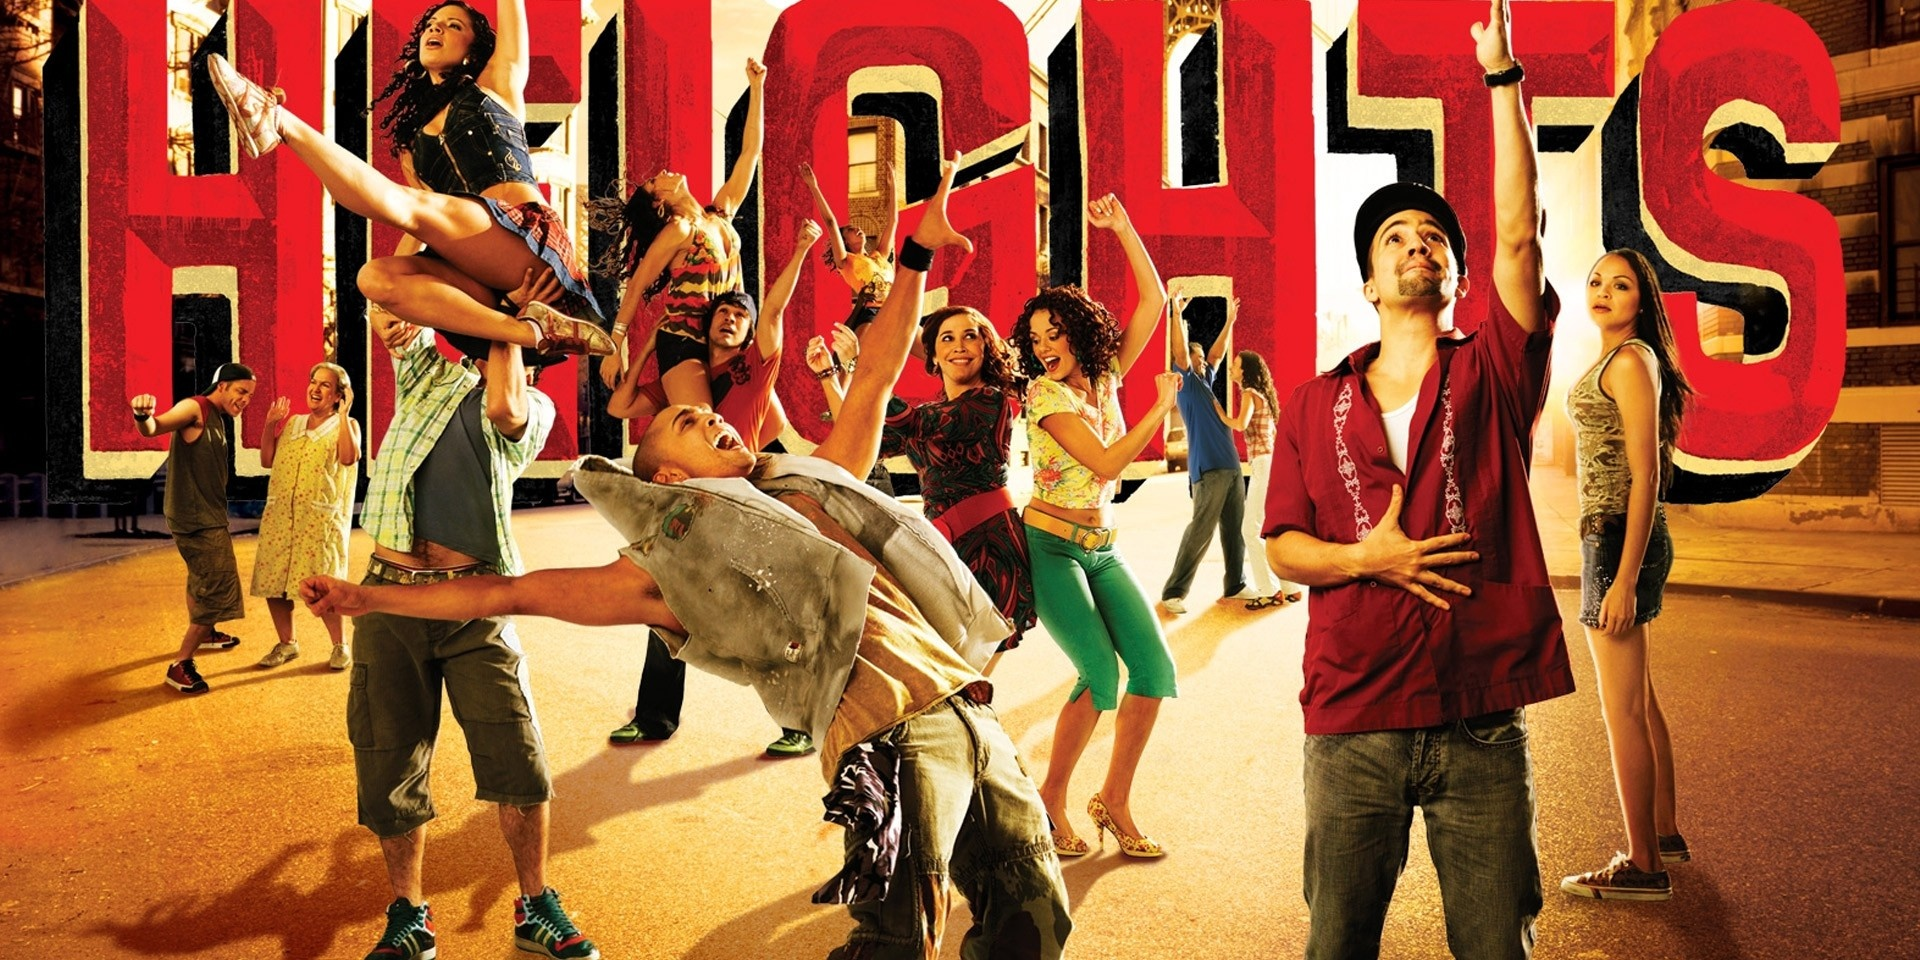 Digital casting call opens for Lin-Manuel Miranda's In the Heights film